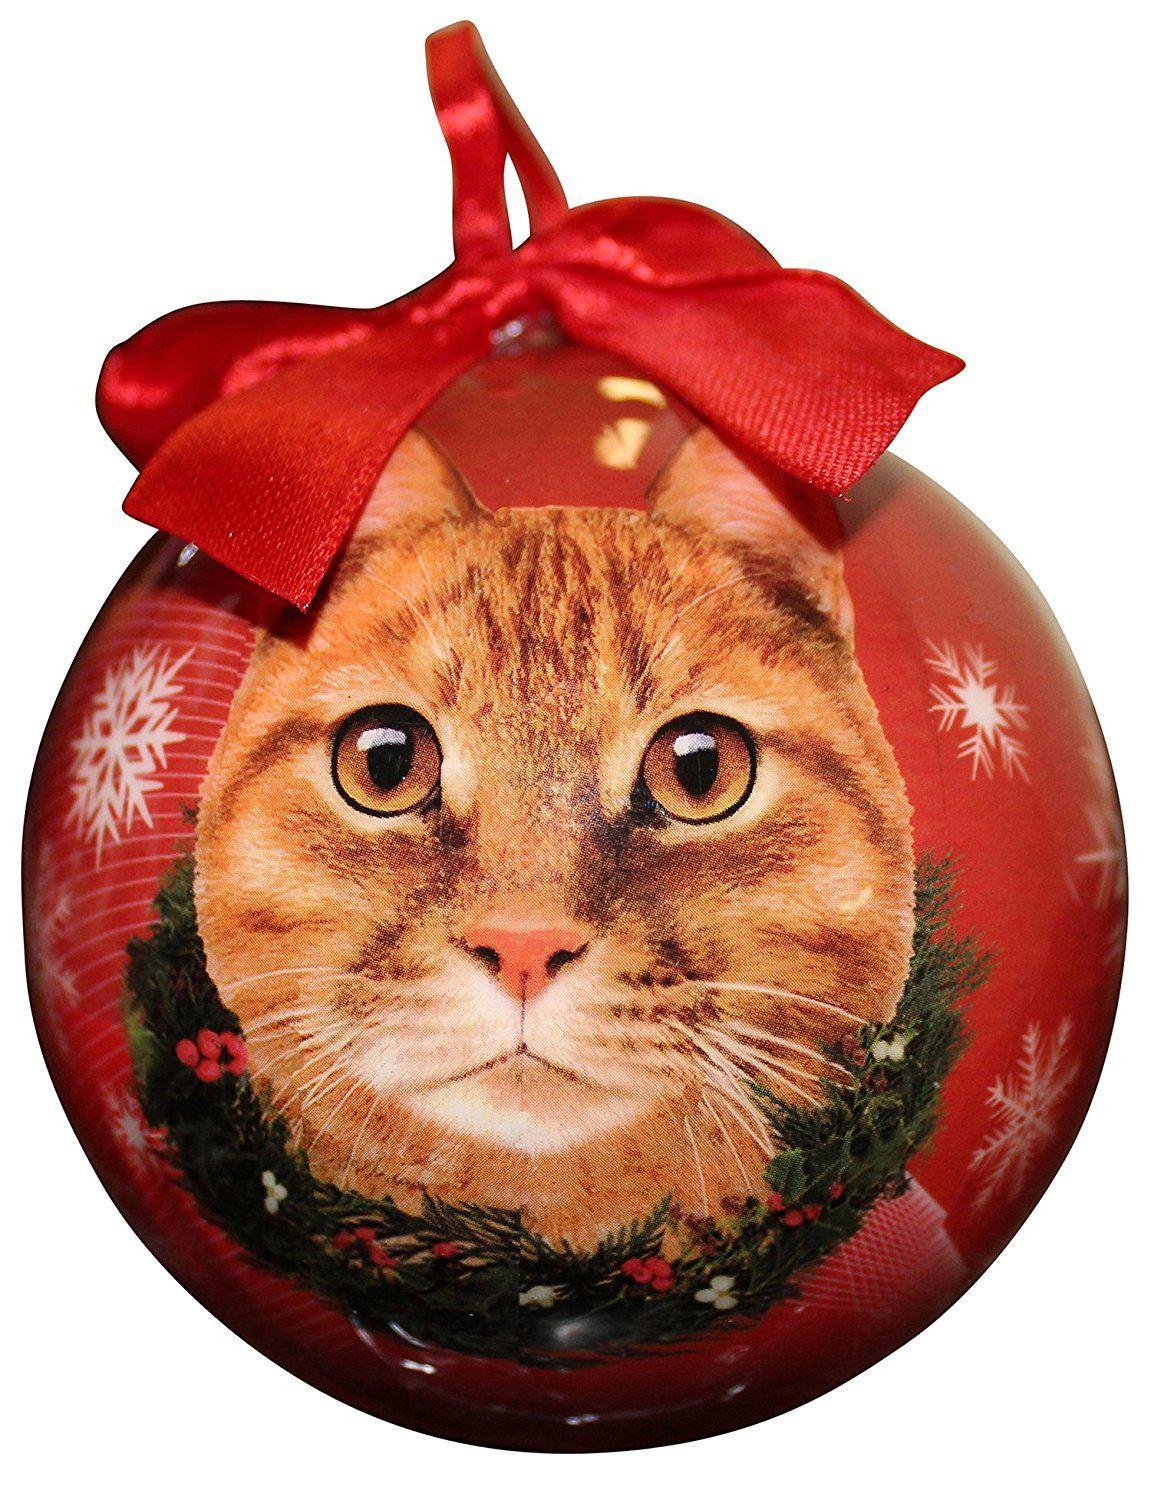 Personalized cat christmas ornaments - Tabby Cat Christmas Ornament Shatter Proof Ball Easy To Personalize A Perfect Gift For Tabby Cat